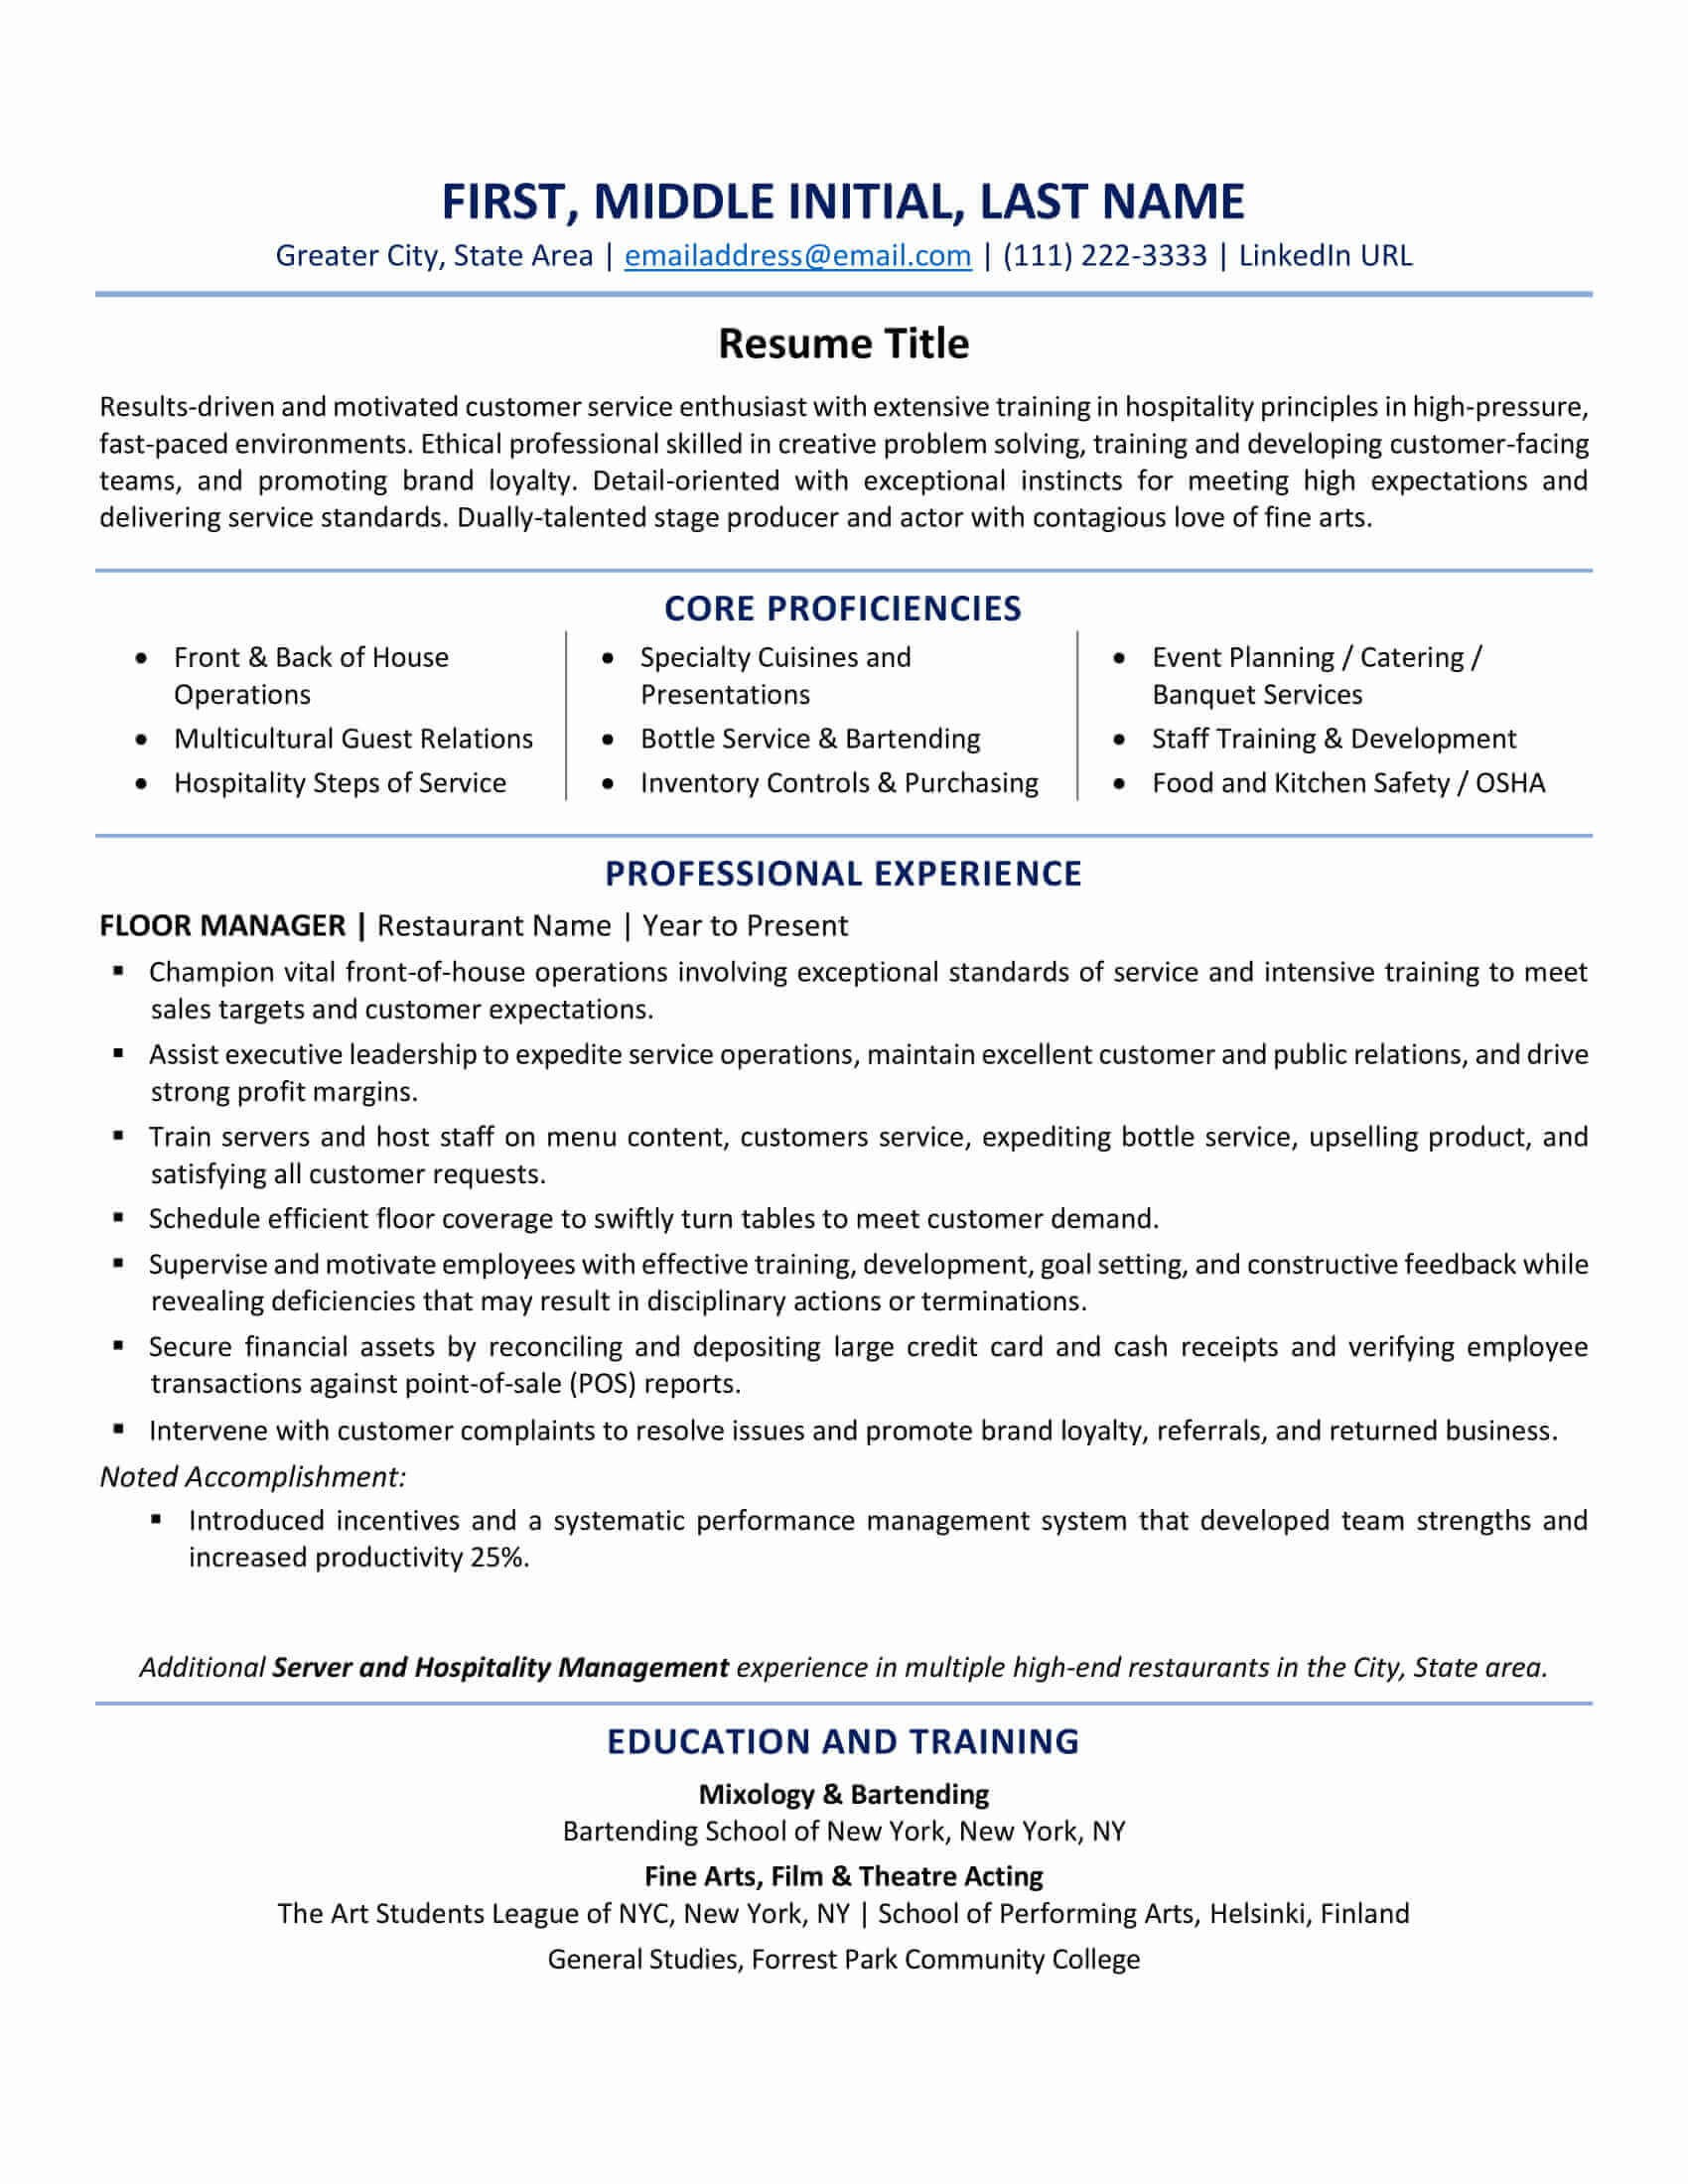 ats resume test free checker formatting examples scan when moving to the us health Resume Free Ats Resume Scan